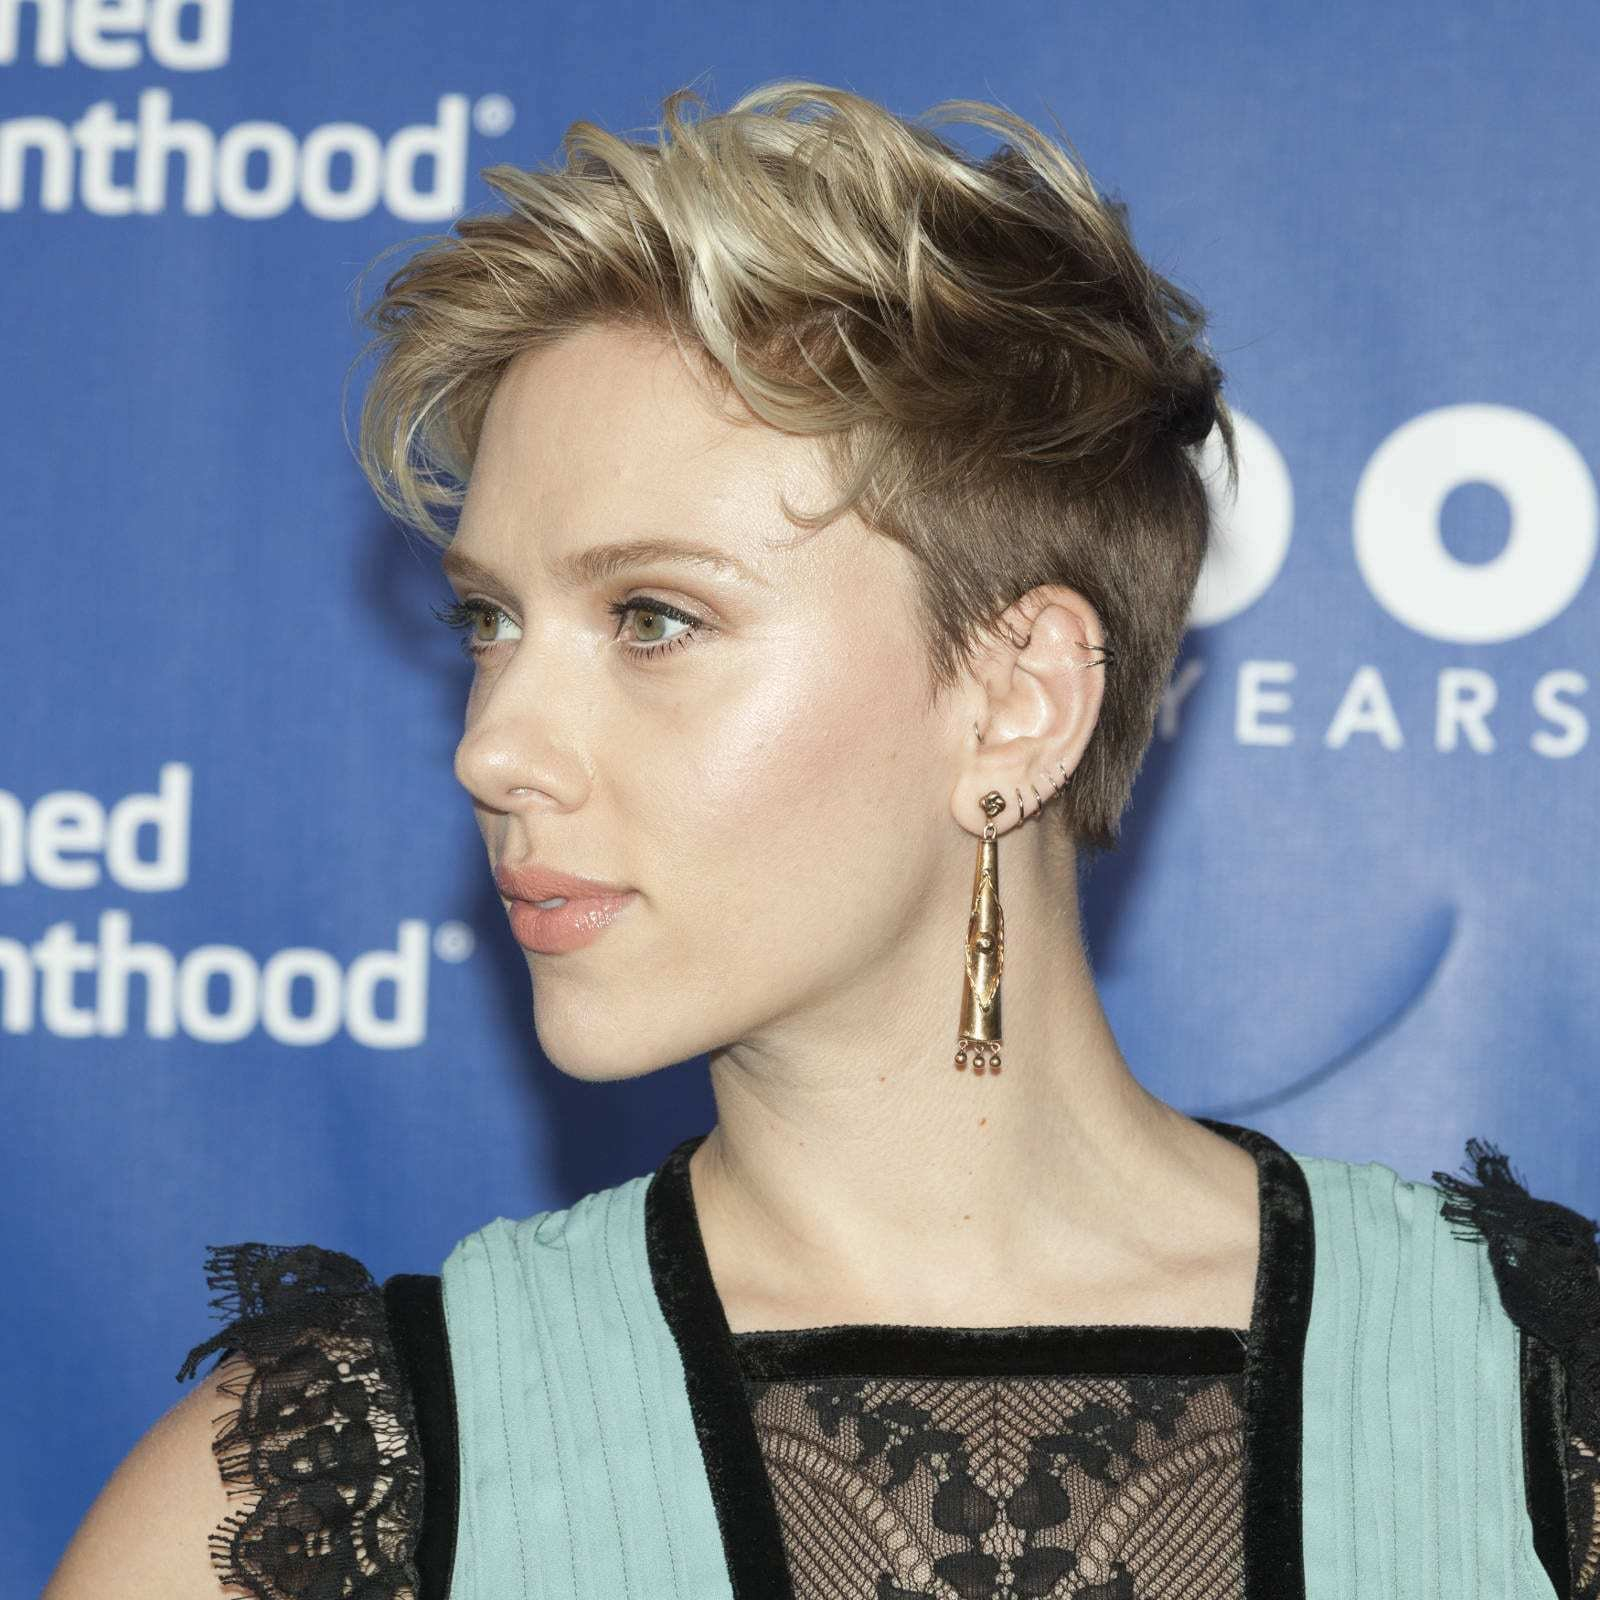 The Best Empowering Women 7 Reasons To Get A Short Haircut Pictures